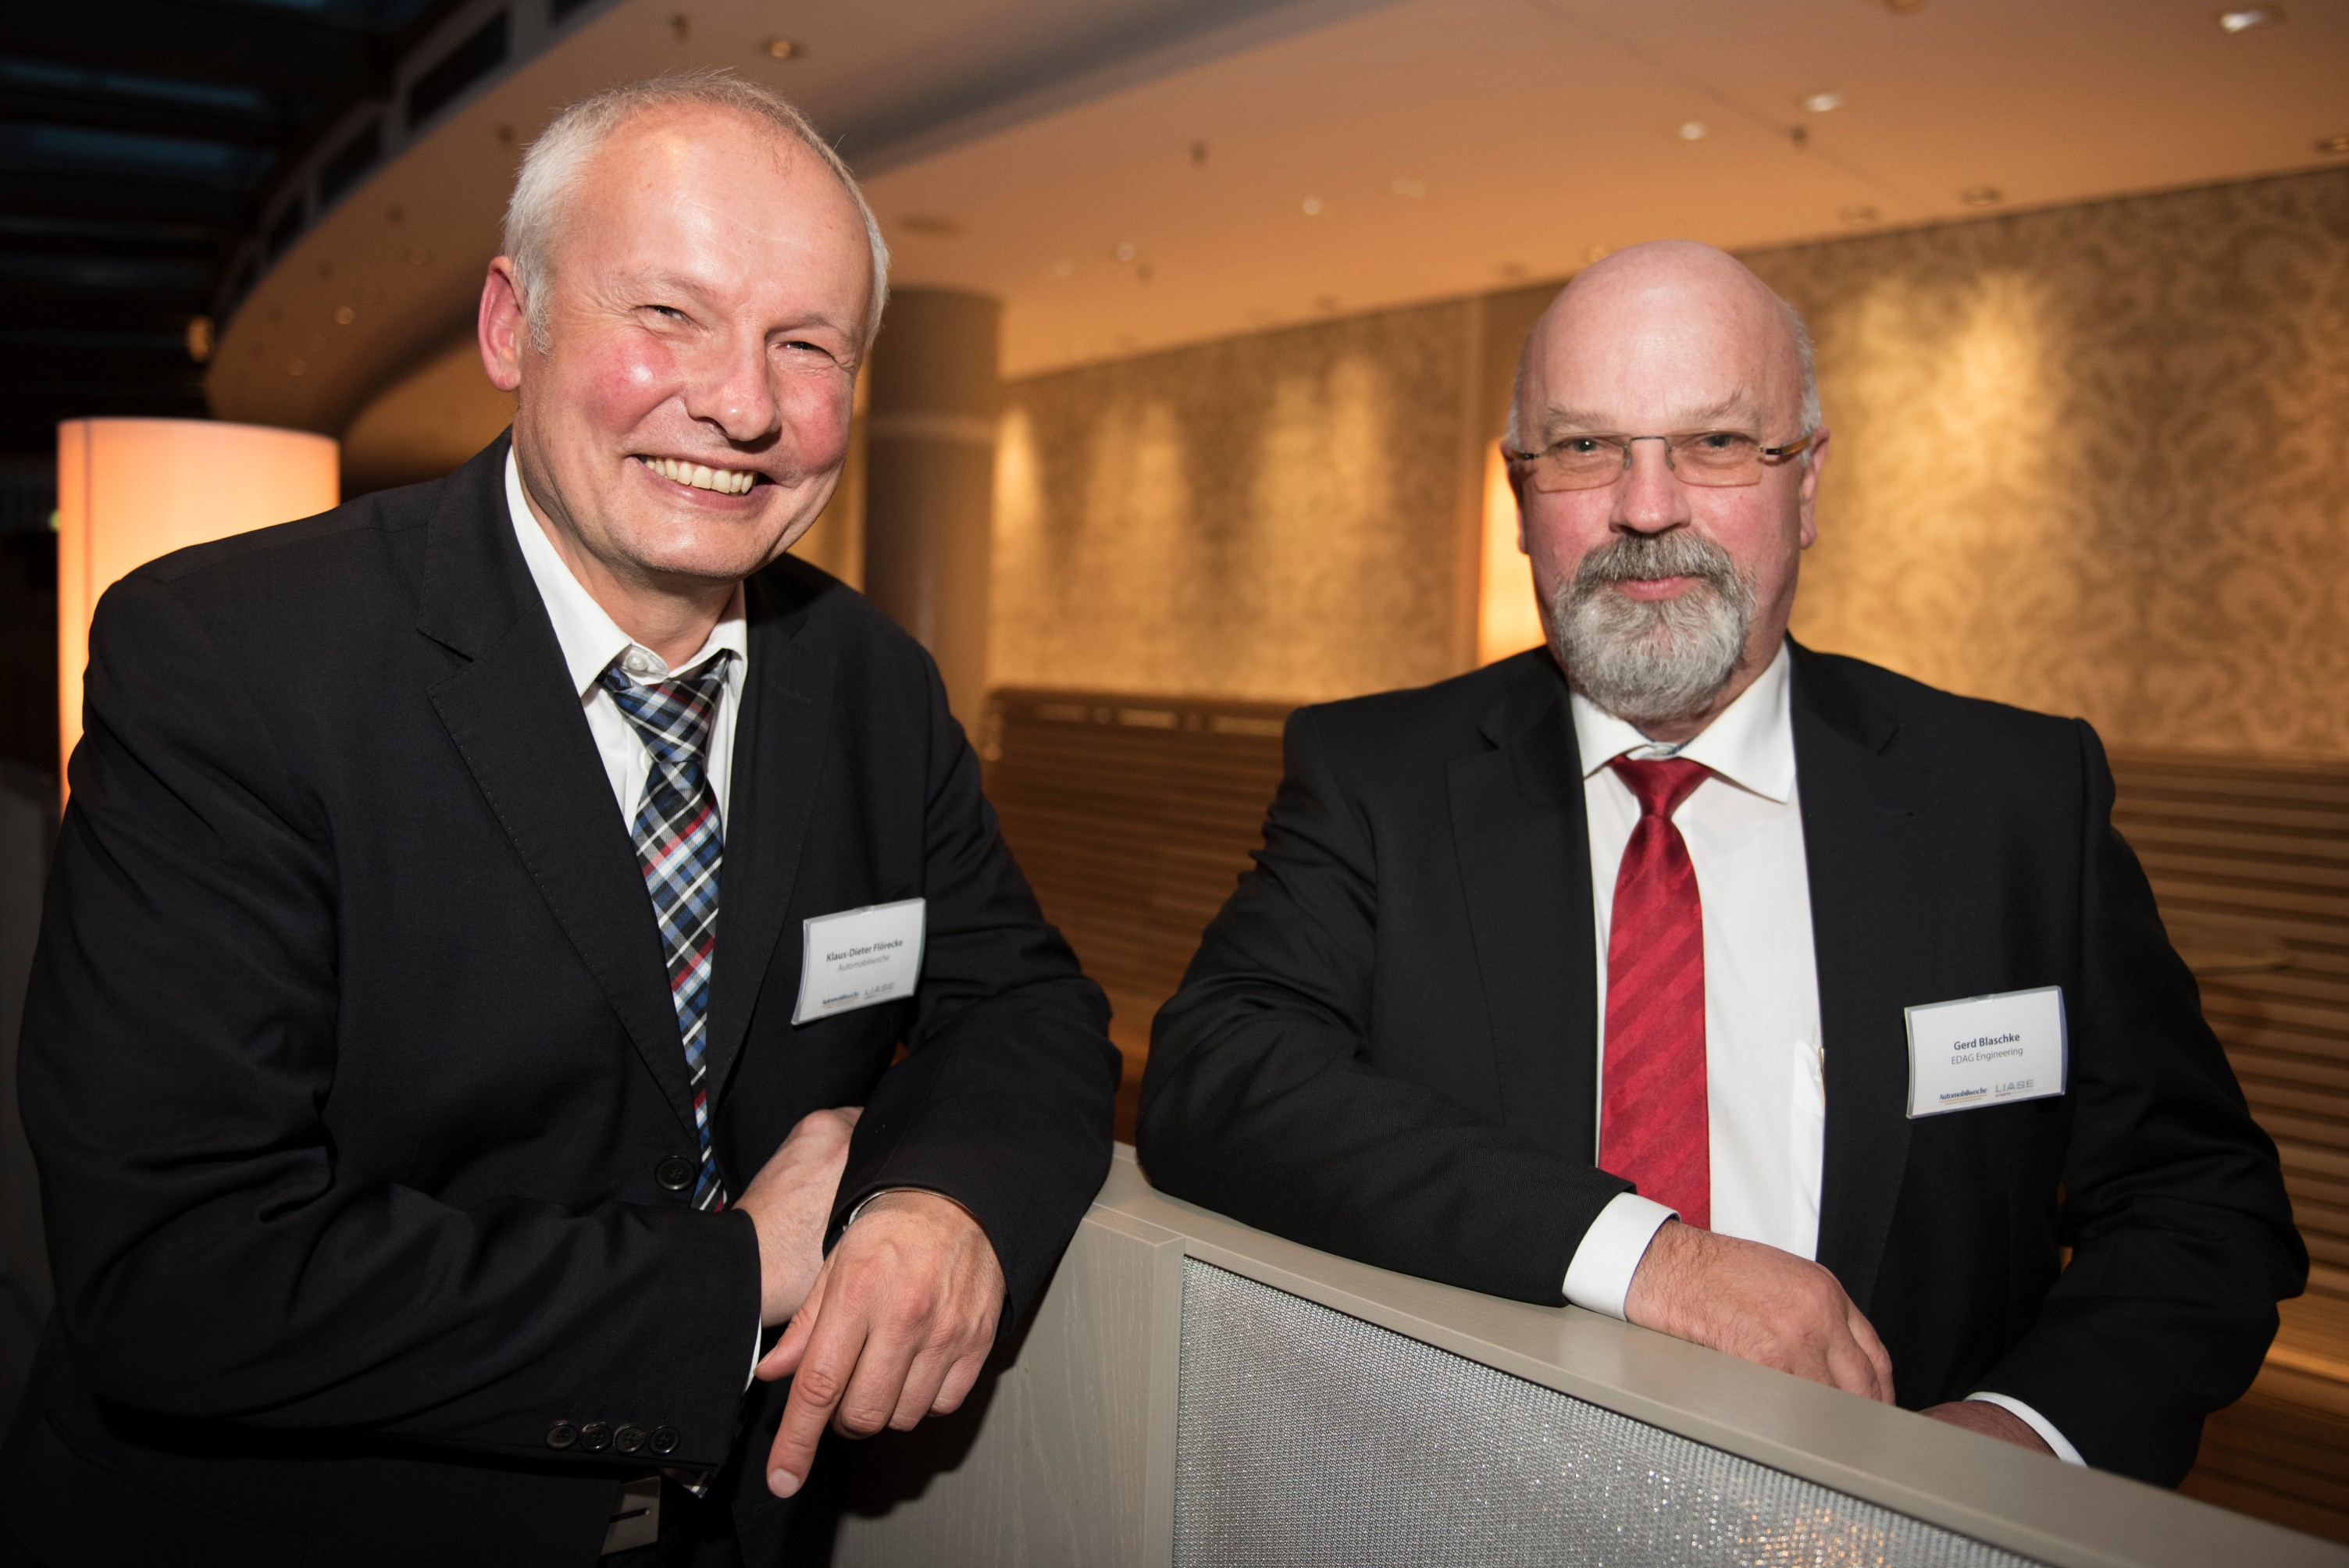 Klaus-Dieter Flörecke (left), Editor of Automobilwoche; and Gerd Blaschke (right), Head of Division, EDAG Engineering, Volkswagen.